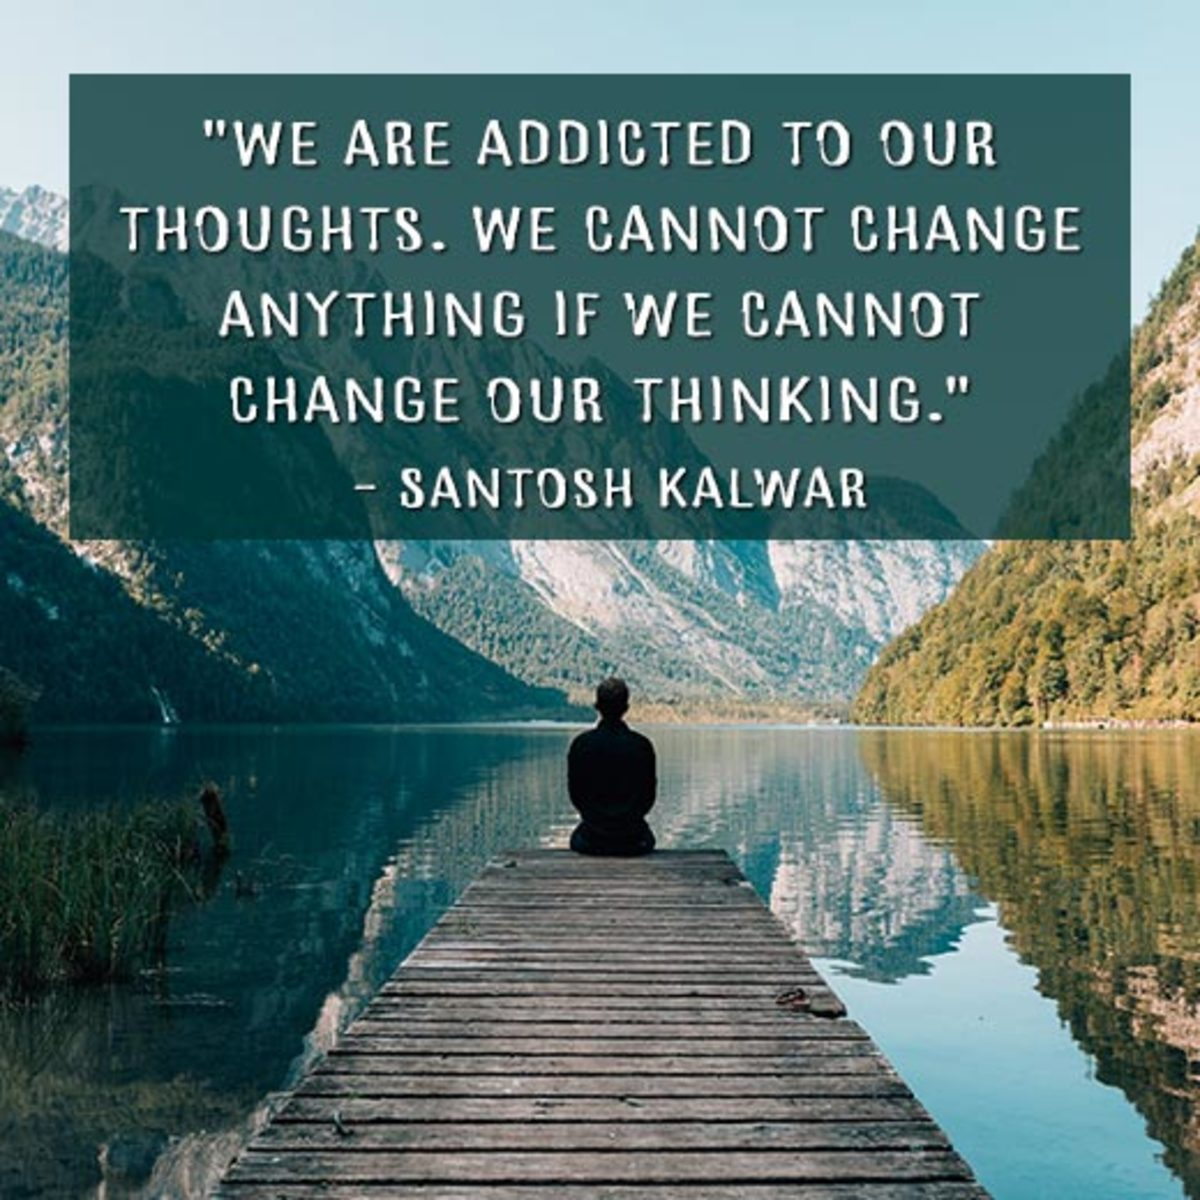 """""""We are addicted to our thoughts. We cannot change anything if we cannot change our thinking."""" —Santosh Kalwar"""